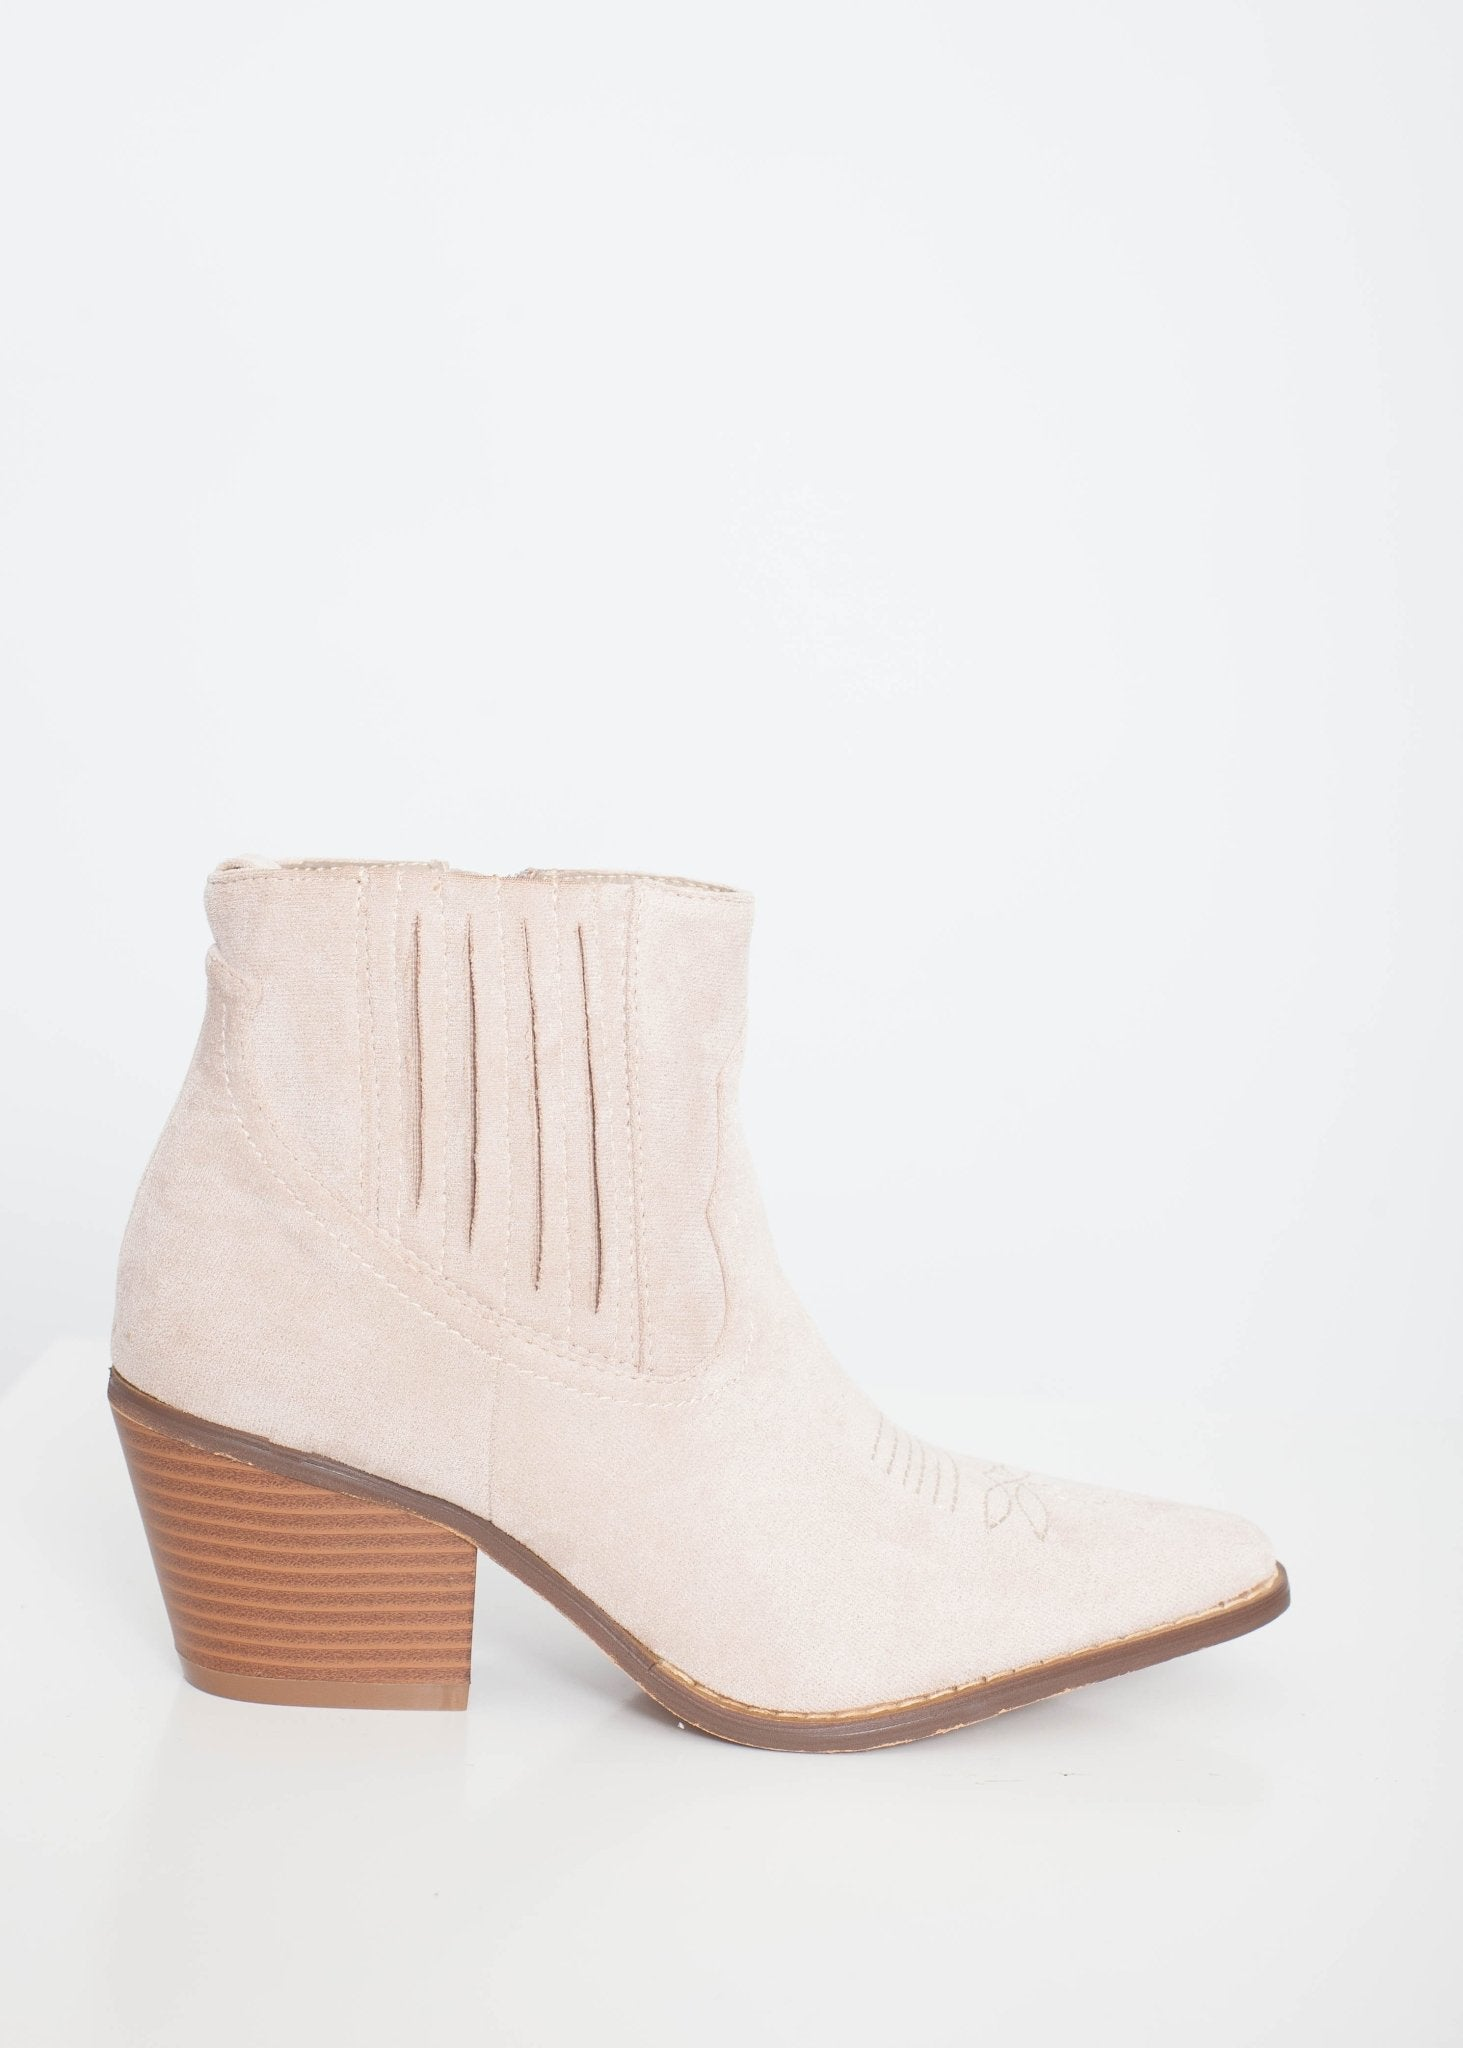 Gabby Western Boot In Beige - The Walk in Wardrobe